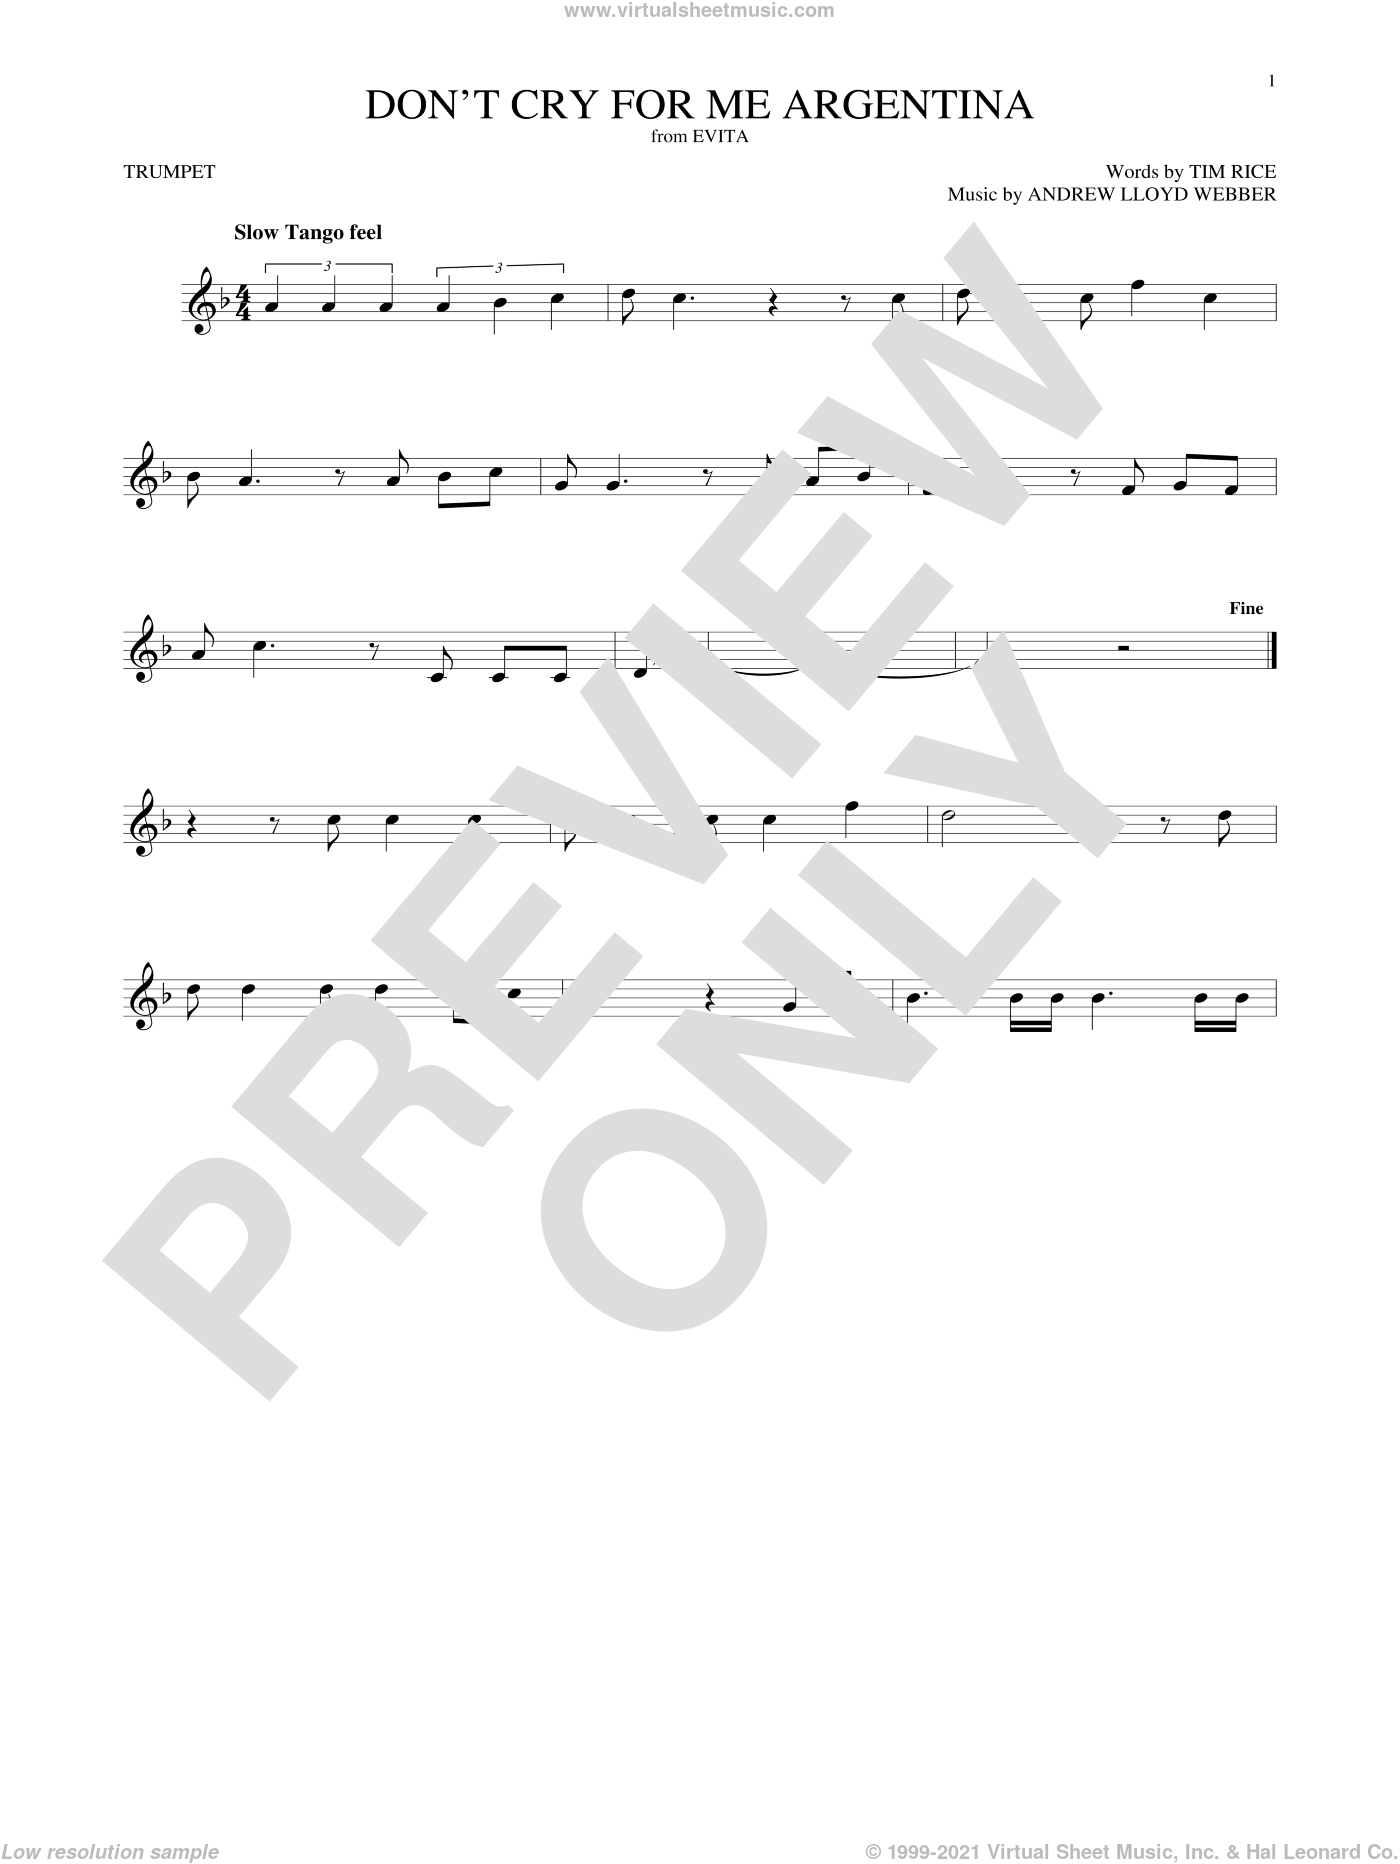 Don't Cry For Me Argentina sheet music for trumpet solo by Andrew Lloyd Webber, Madonna and Tim Rice, intermediate skill level